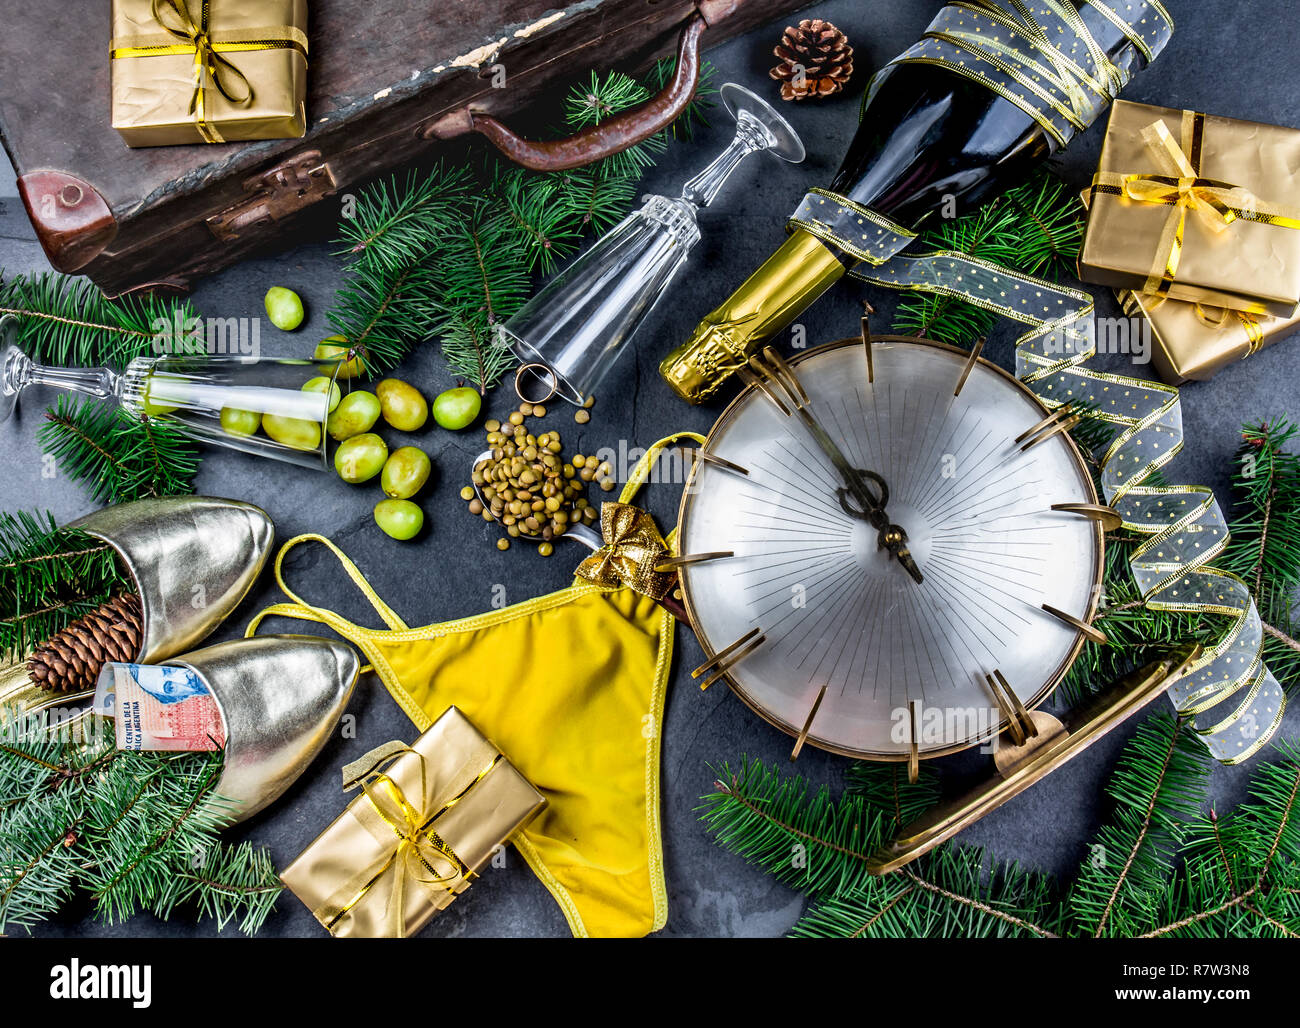 LATIN AMERICAN AND SPANISH NEW YEAR TRADITIONS. empty suitcase, lentil spoon, yellow interior clothes, gold ring in champagne, 12 grapes, money in sho - Stock Image